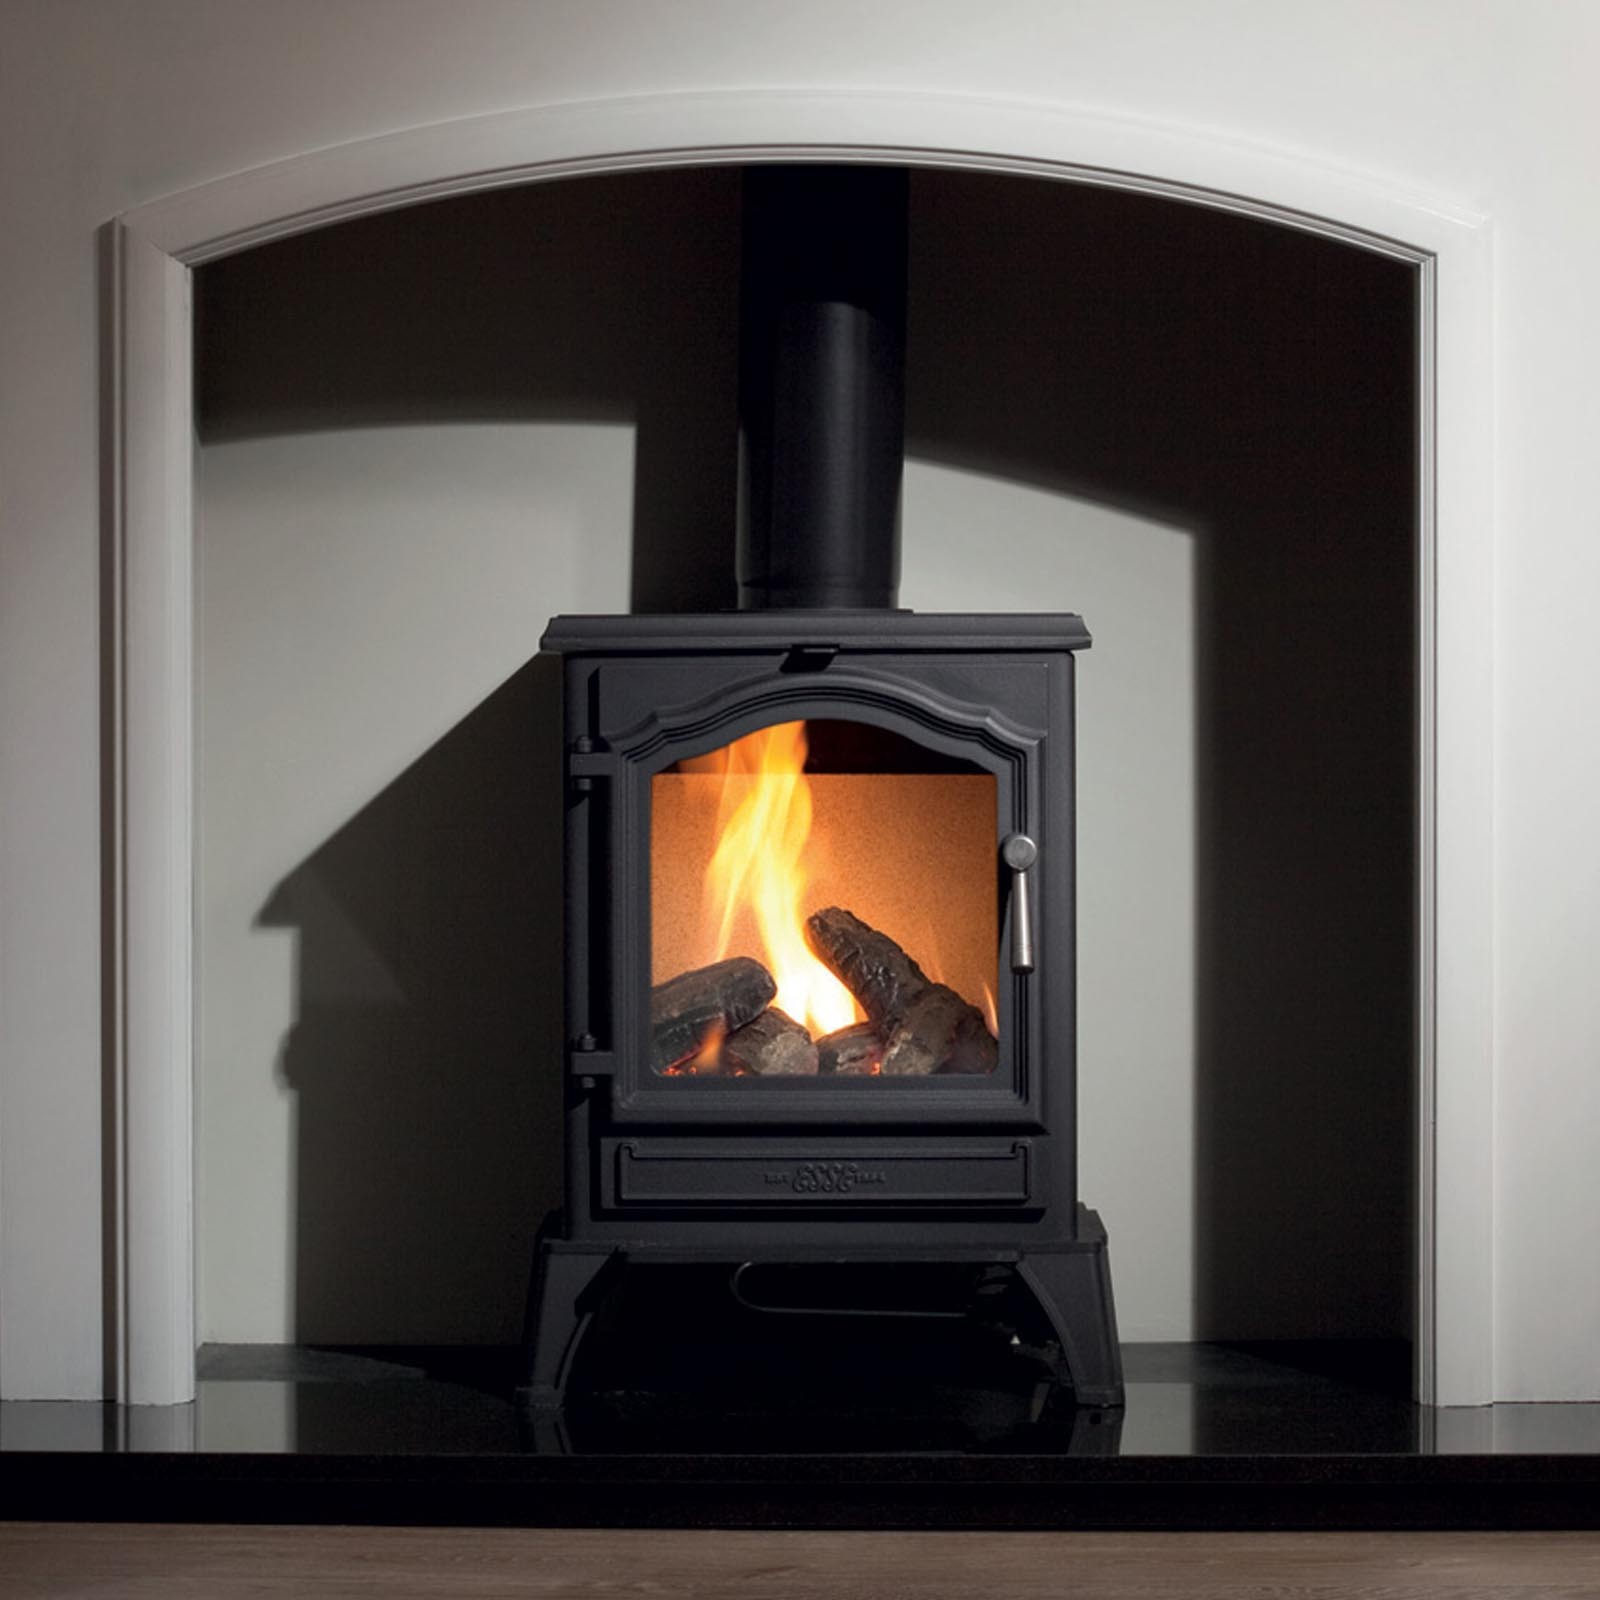 Browse our huge selection of inset gas fires, wall mounted gas fires and outset gas fires in both traditional and contemporary designs. Whether you're looking for a traditional electric inset fire or the latest wall mounted contemporary electric suites -find your perfect fire here!